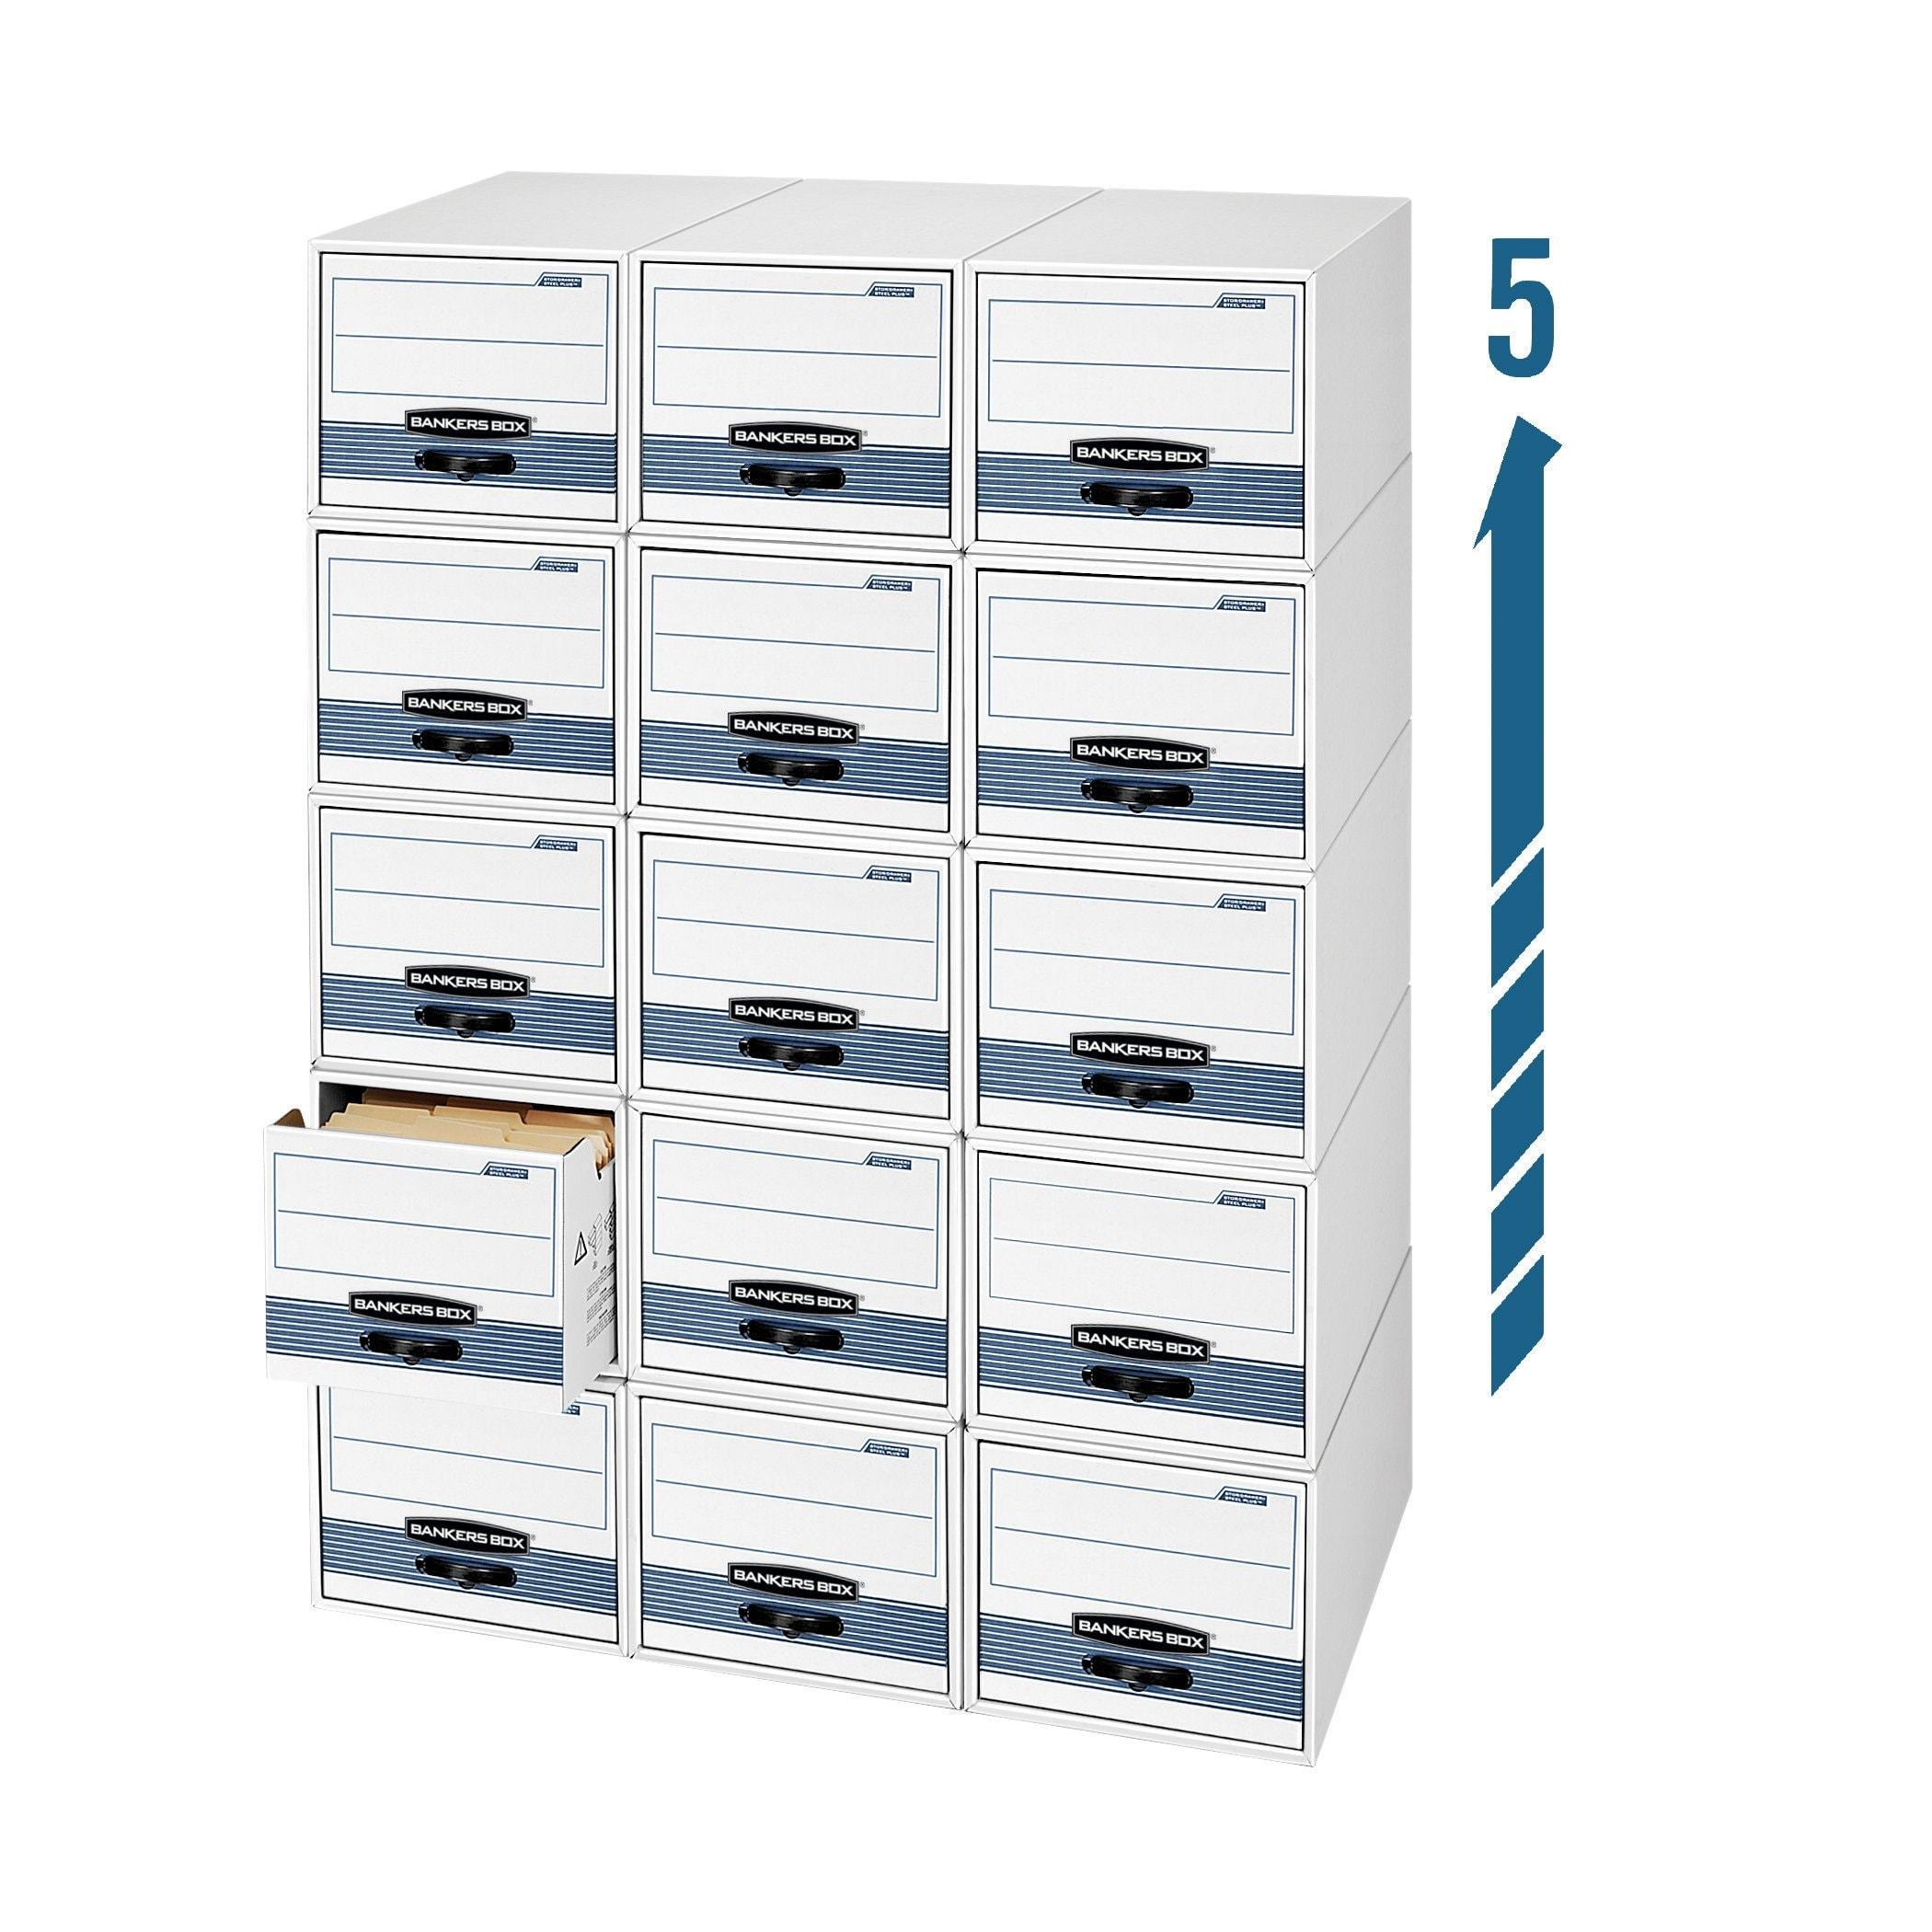 Storage bankers box stor drawer steel plus extra space saving filing cabinet stacks up to 5 high legal 6 pack 00312